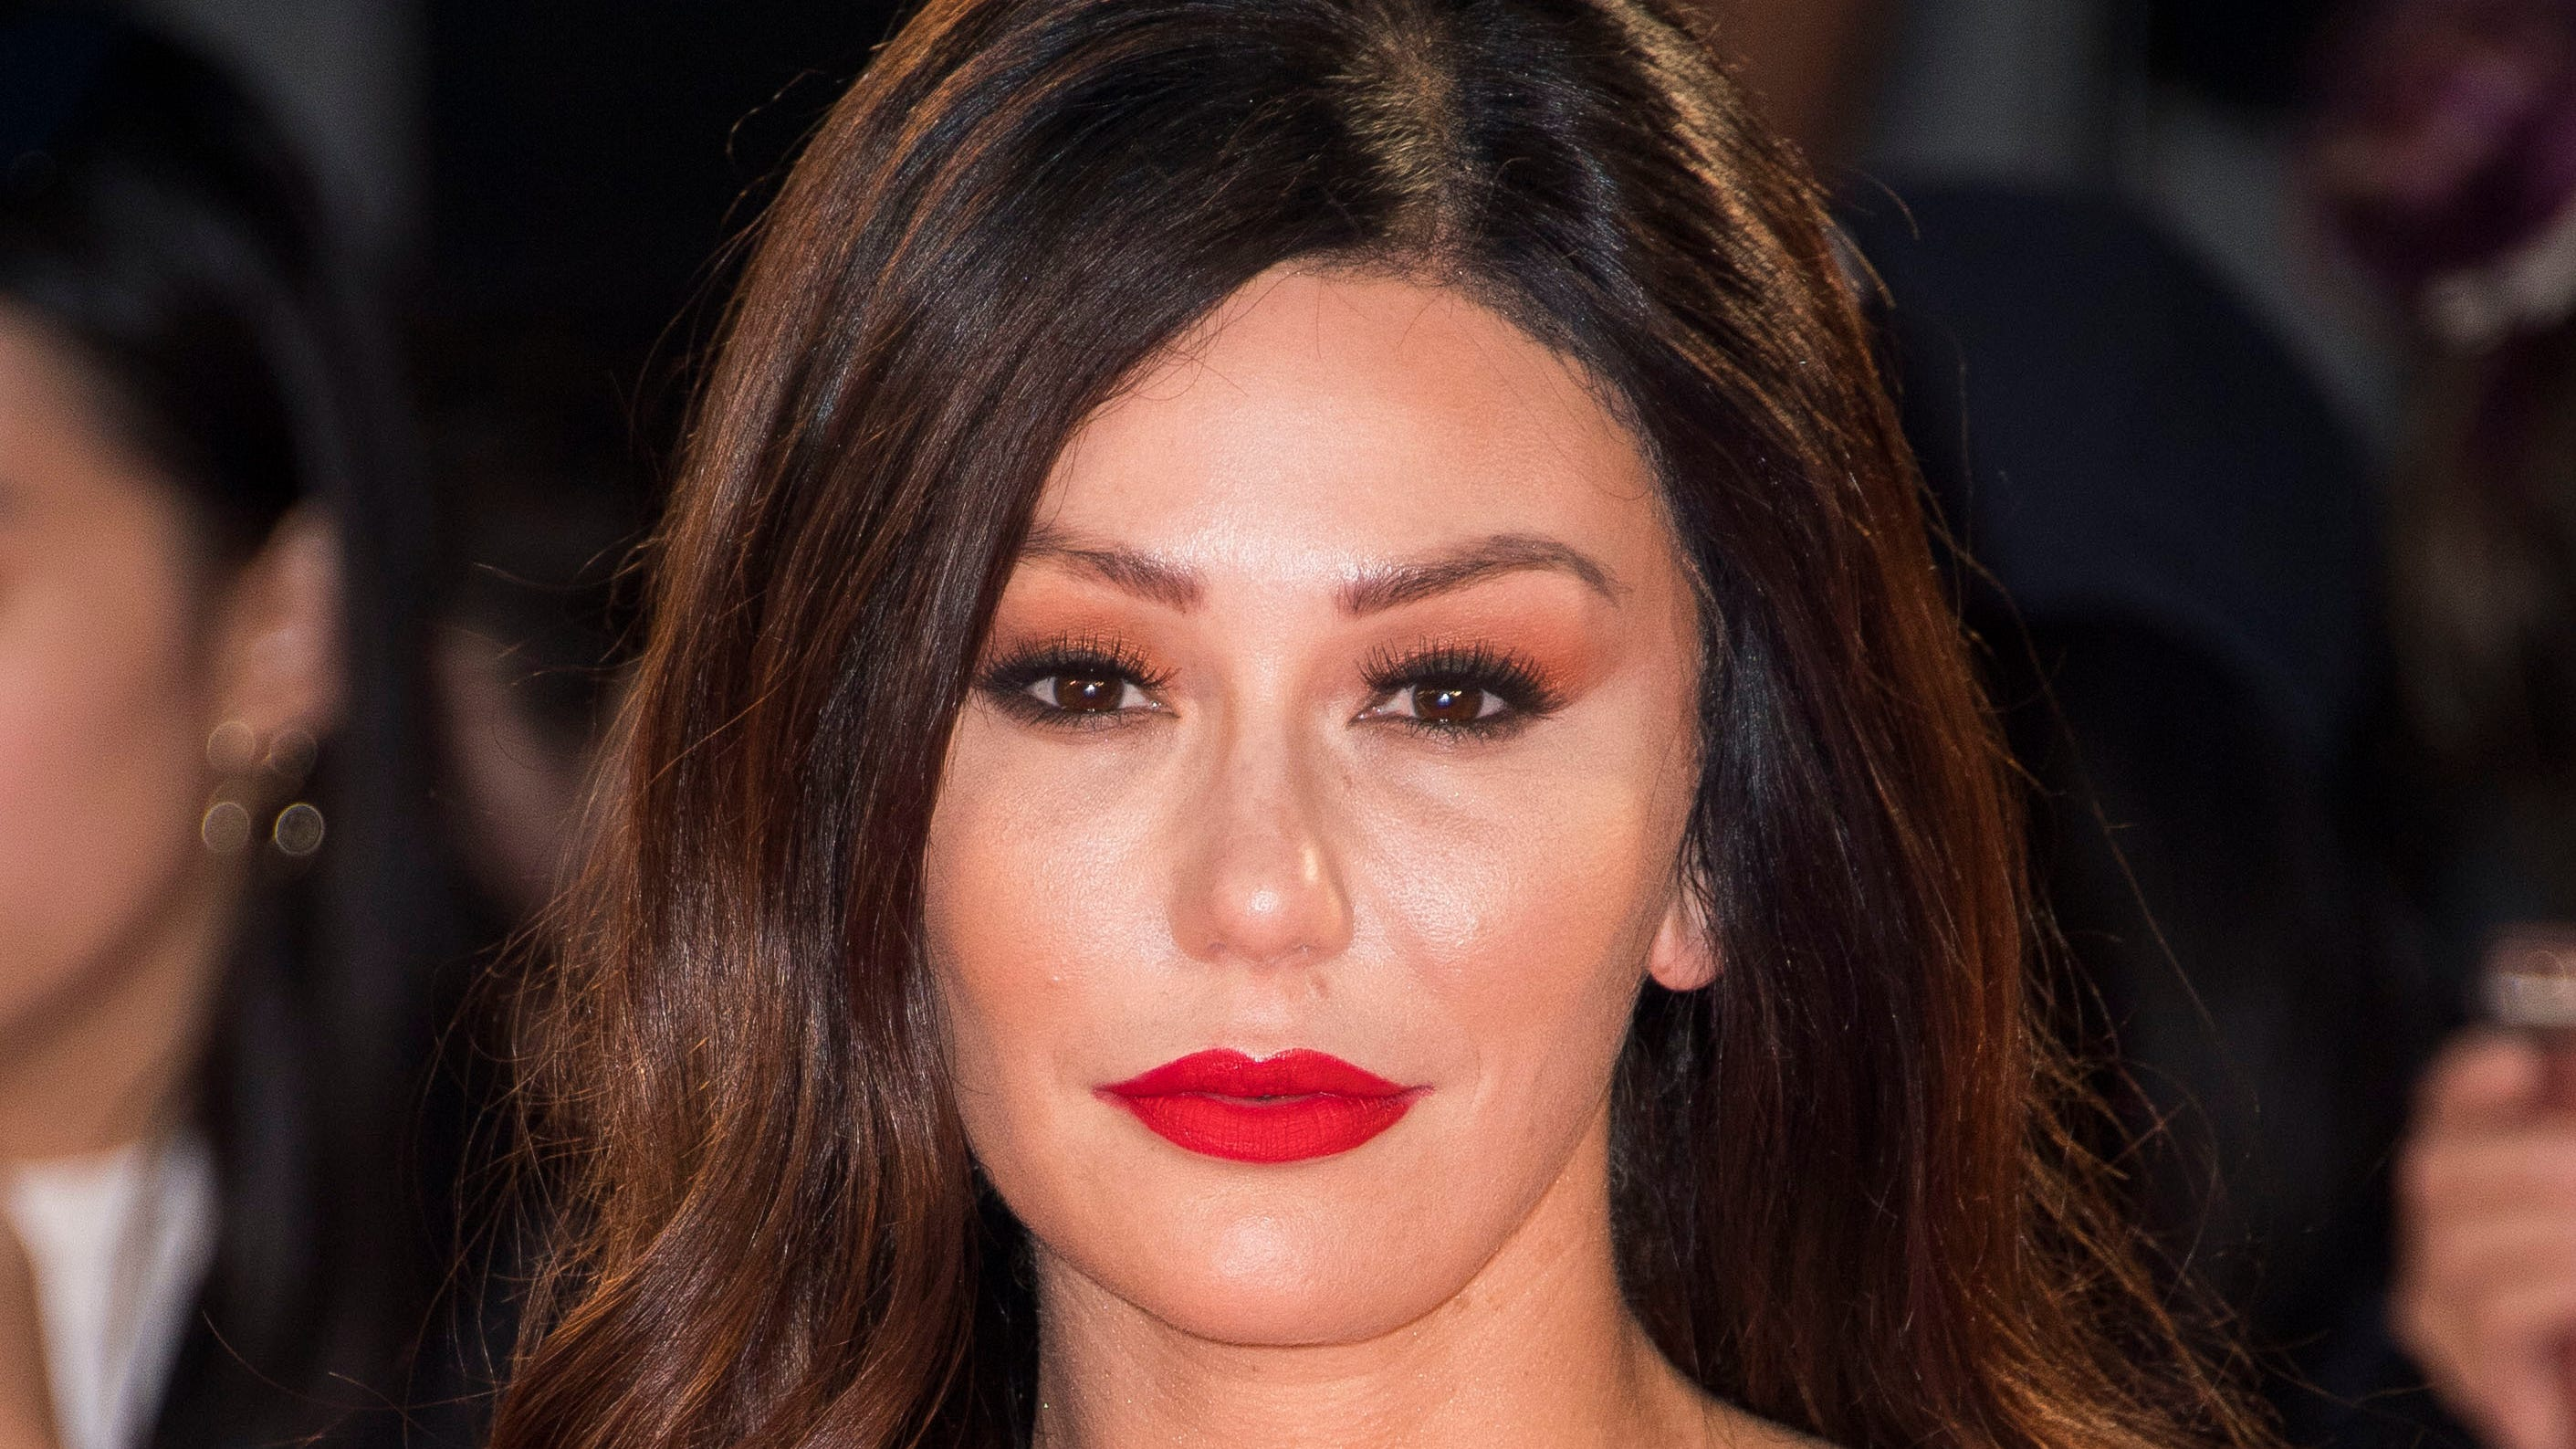 Jenni 'JWoww' Farley shares touching home video of son Greyson's progress